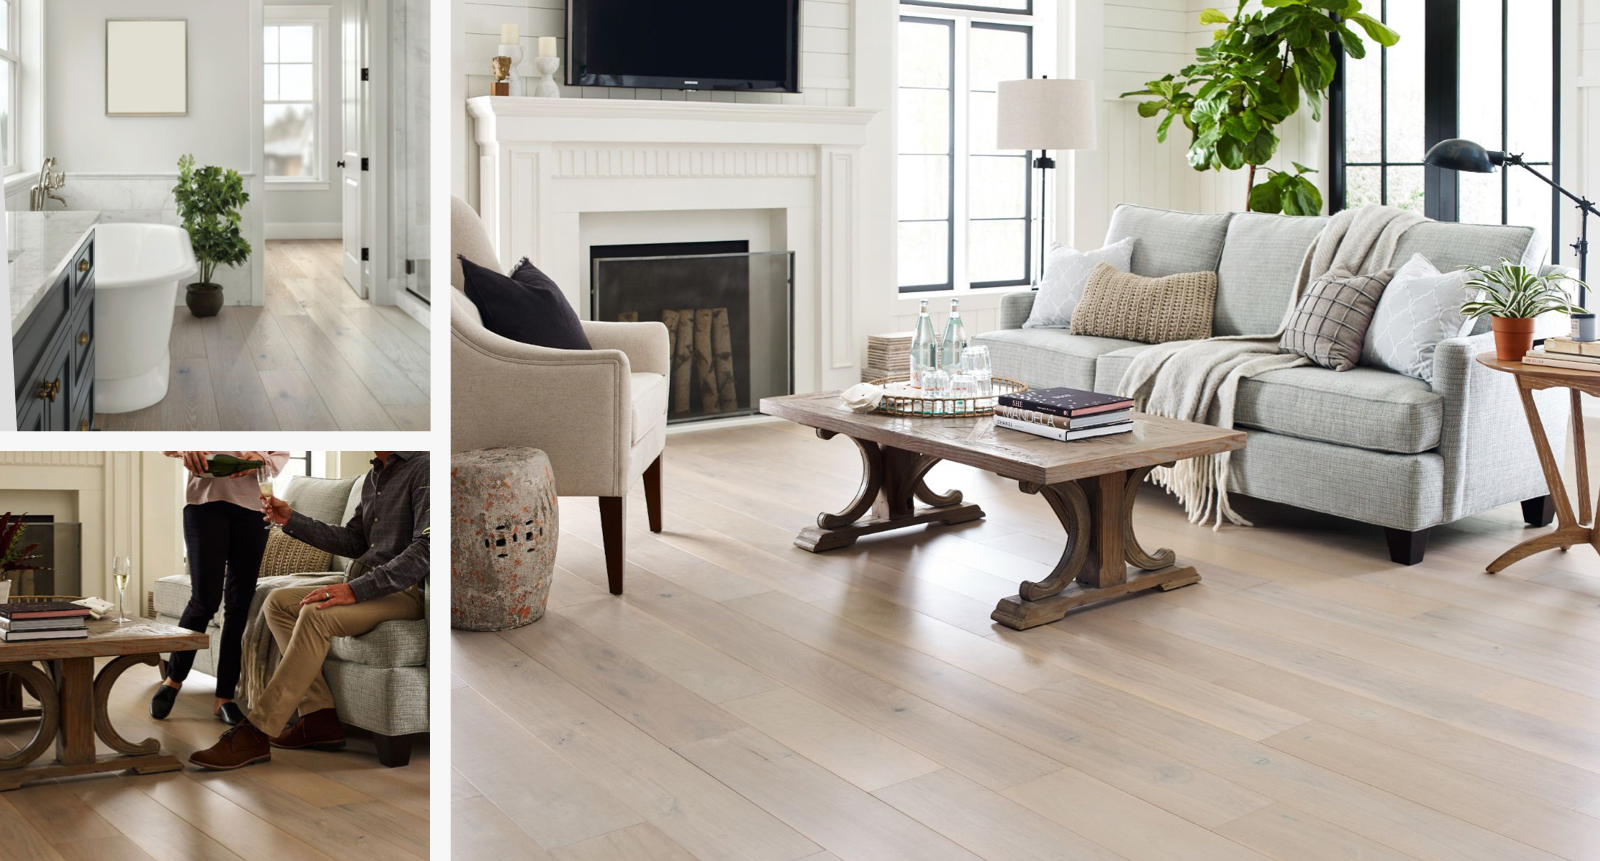 Floorte waterproof hardwood flooring for your home | Floors By Roberts